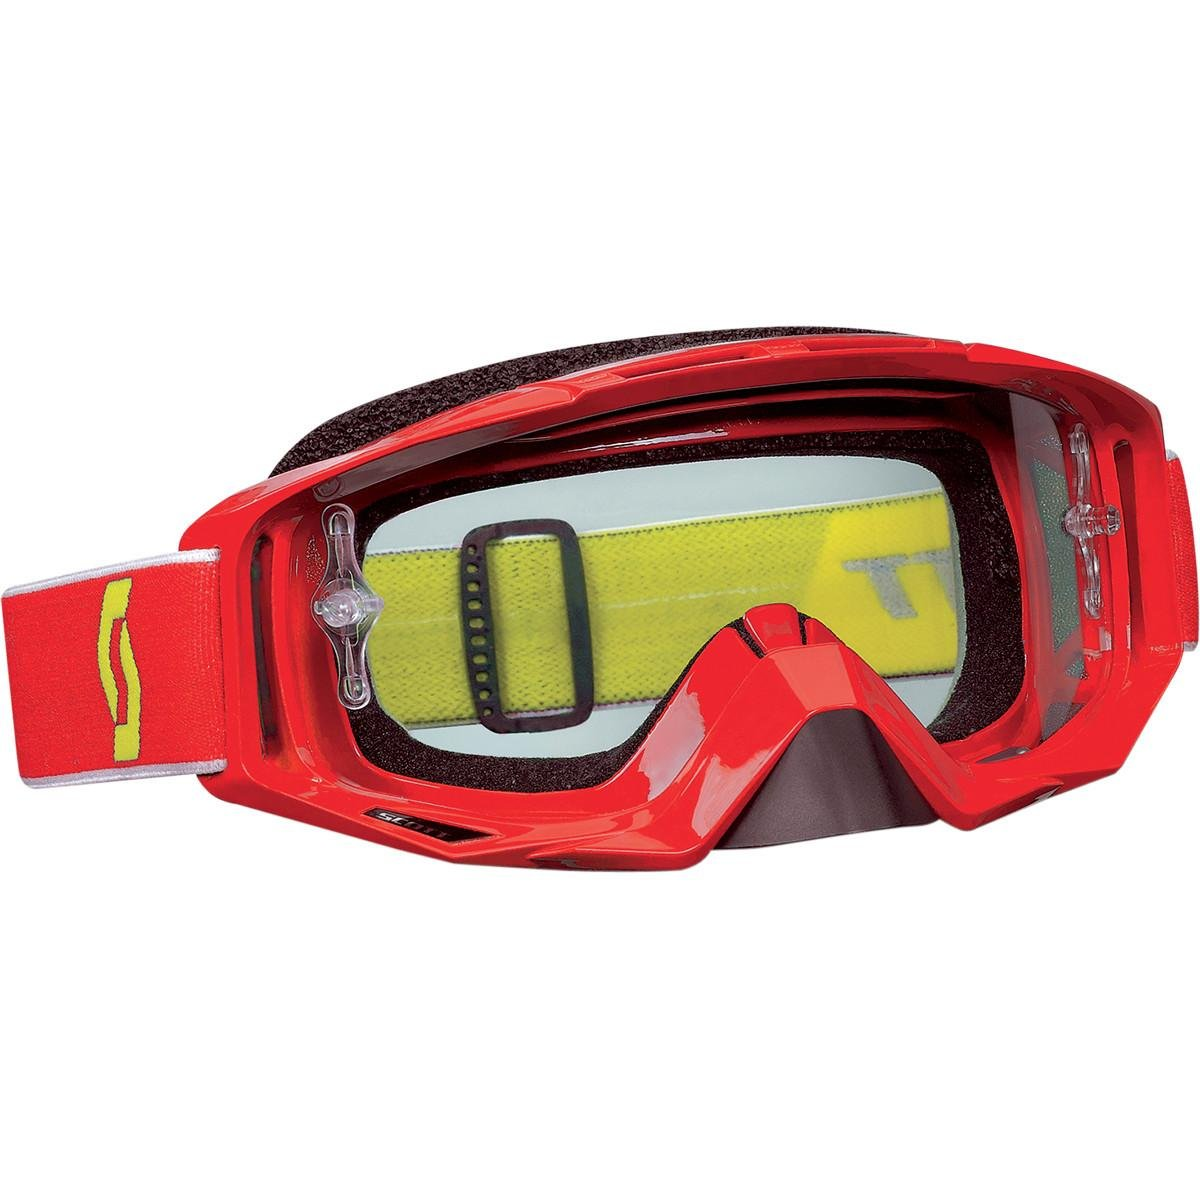 Red Scott Sports Tyrant Goggles with Works Clear AFC Lens (Red, One Size)